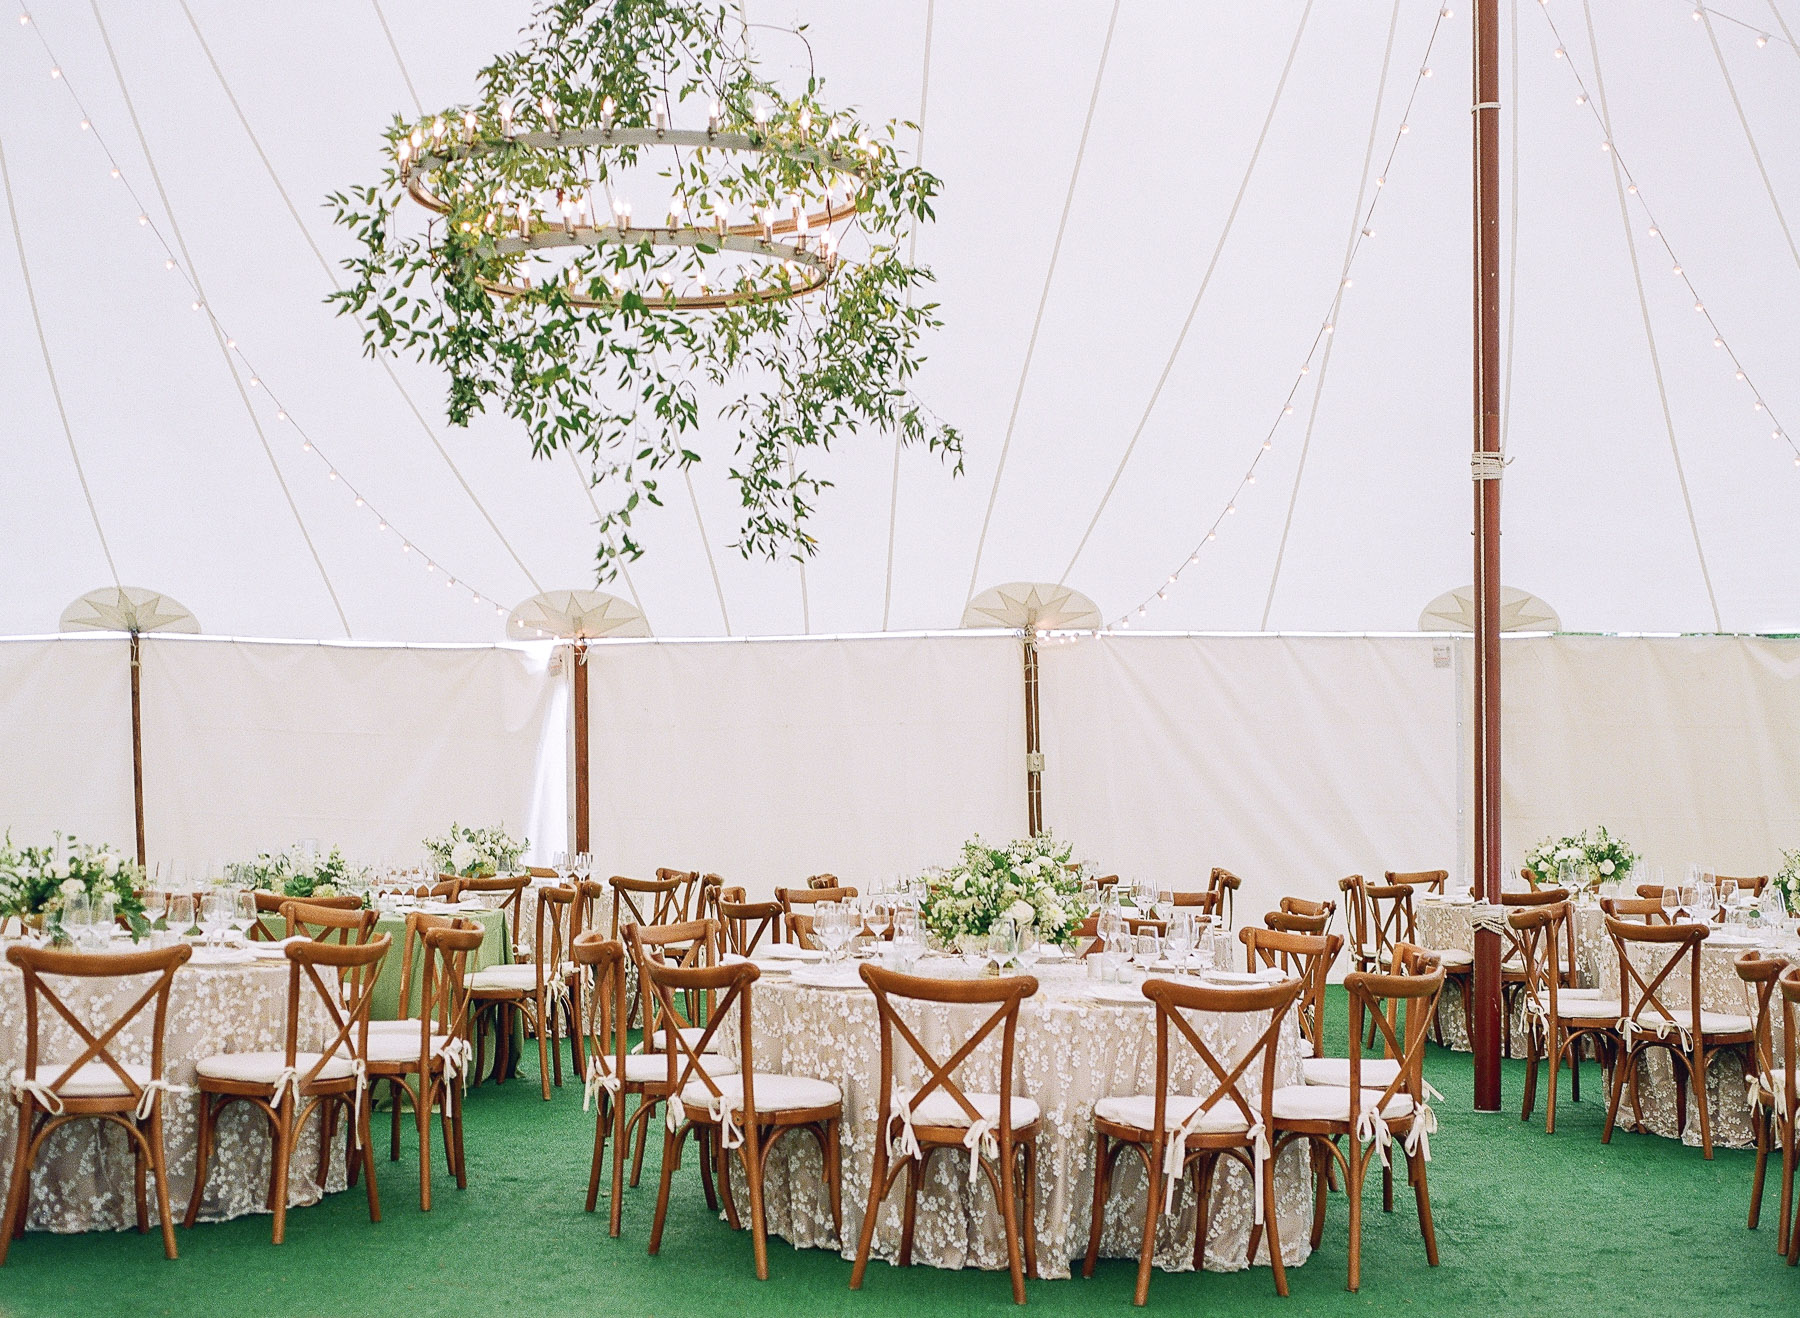 Tent inspiration Private island wedding in upstate ny